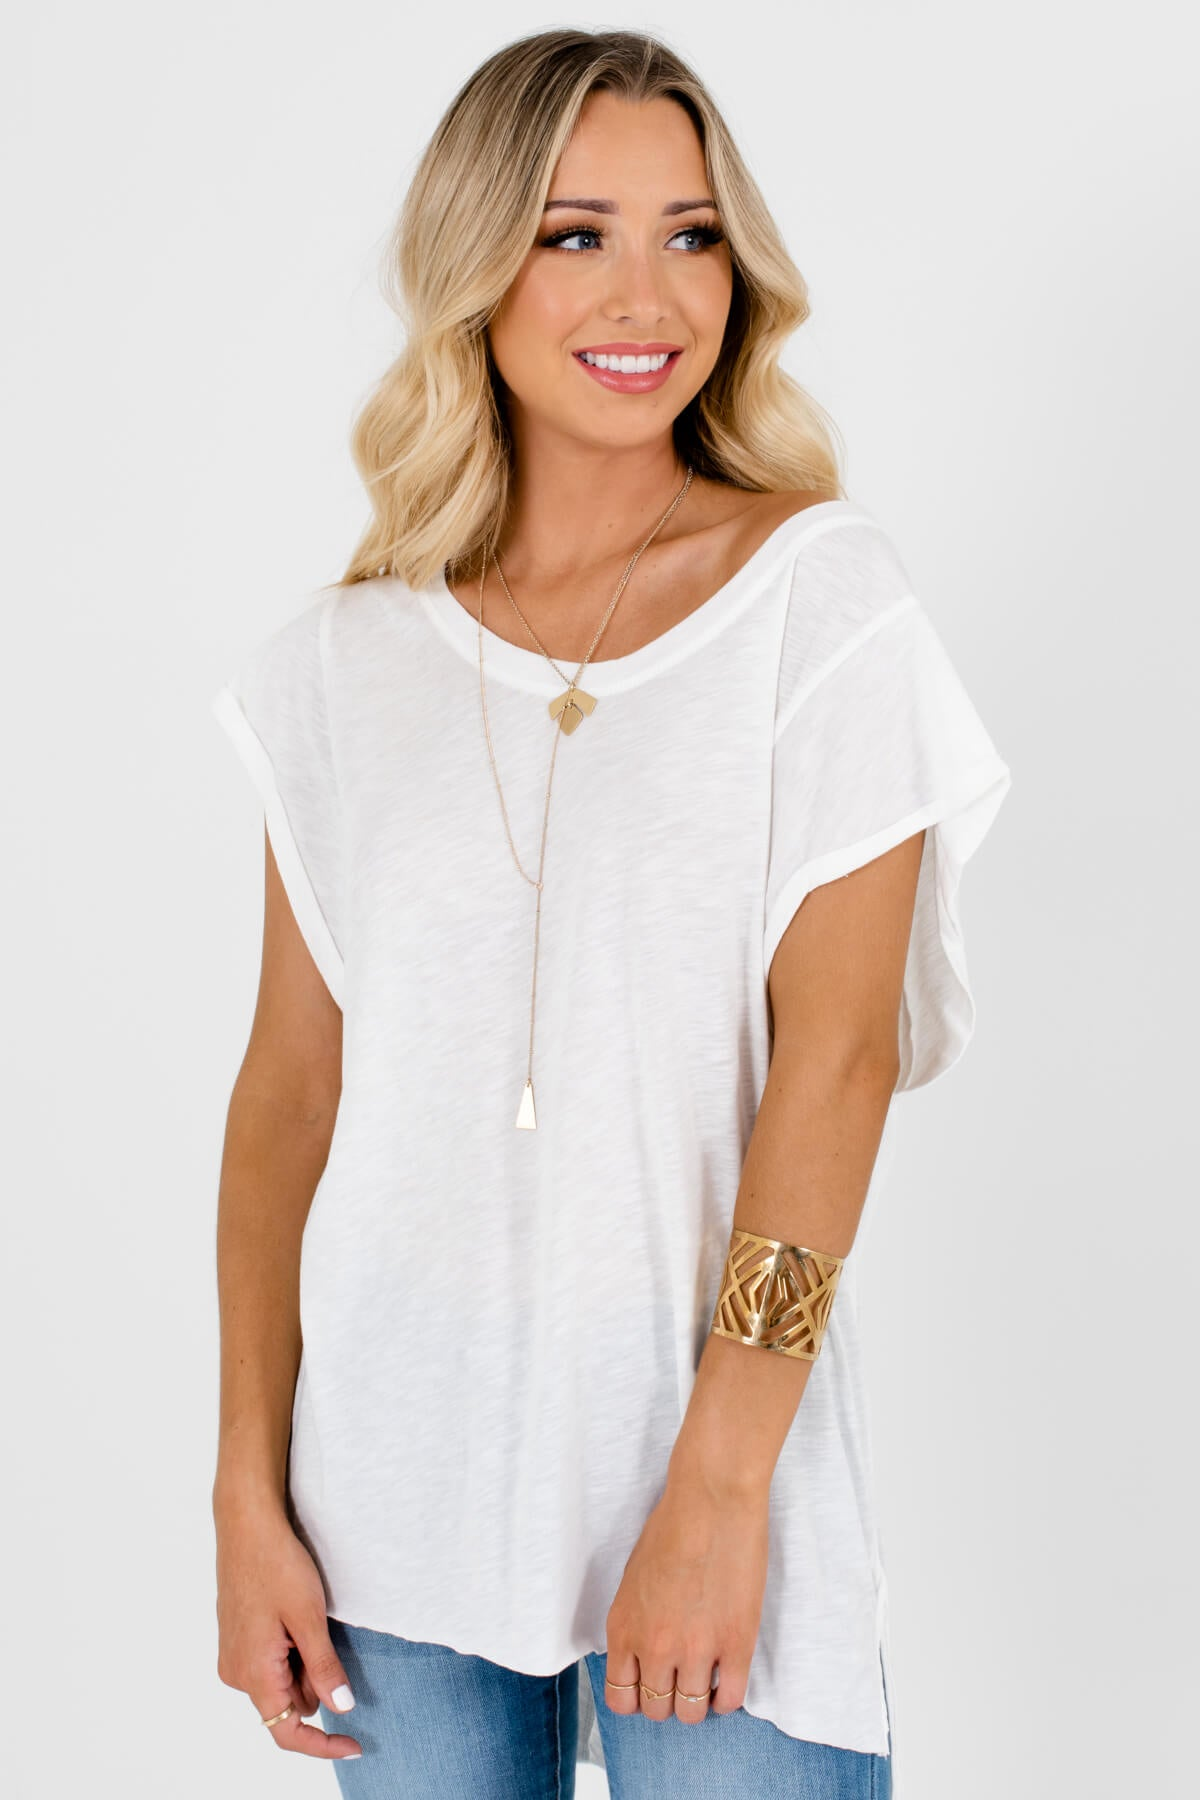 White High-Low Hem Boutique T-Shirts for Women